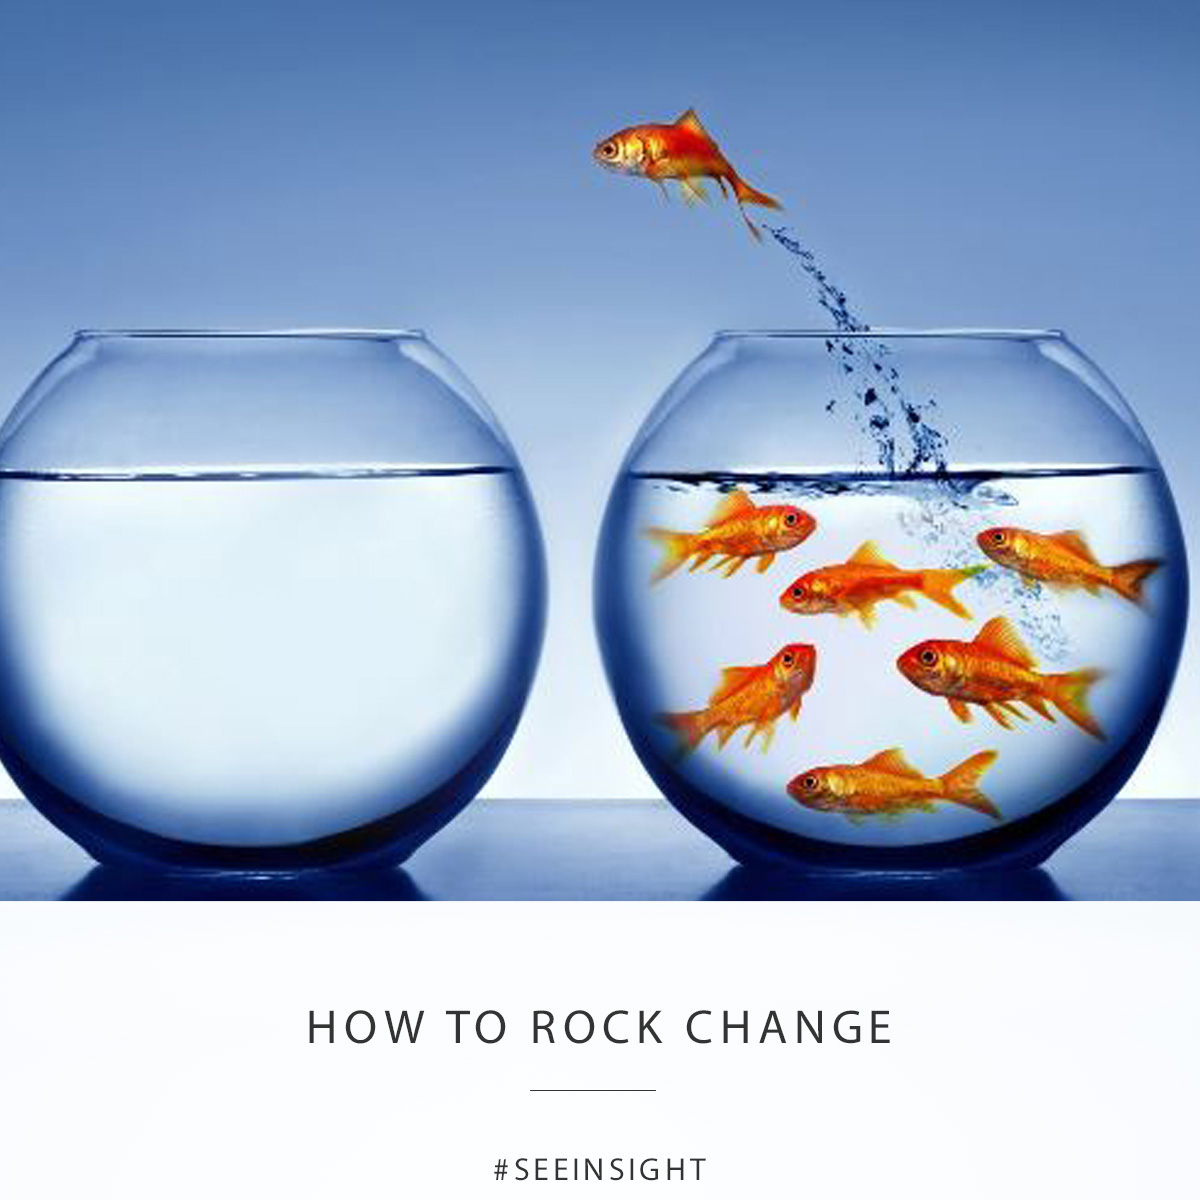 How to Rock Change